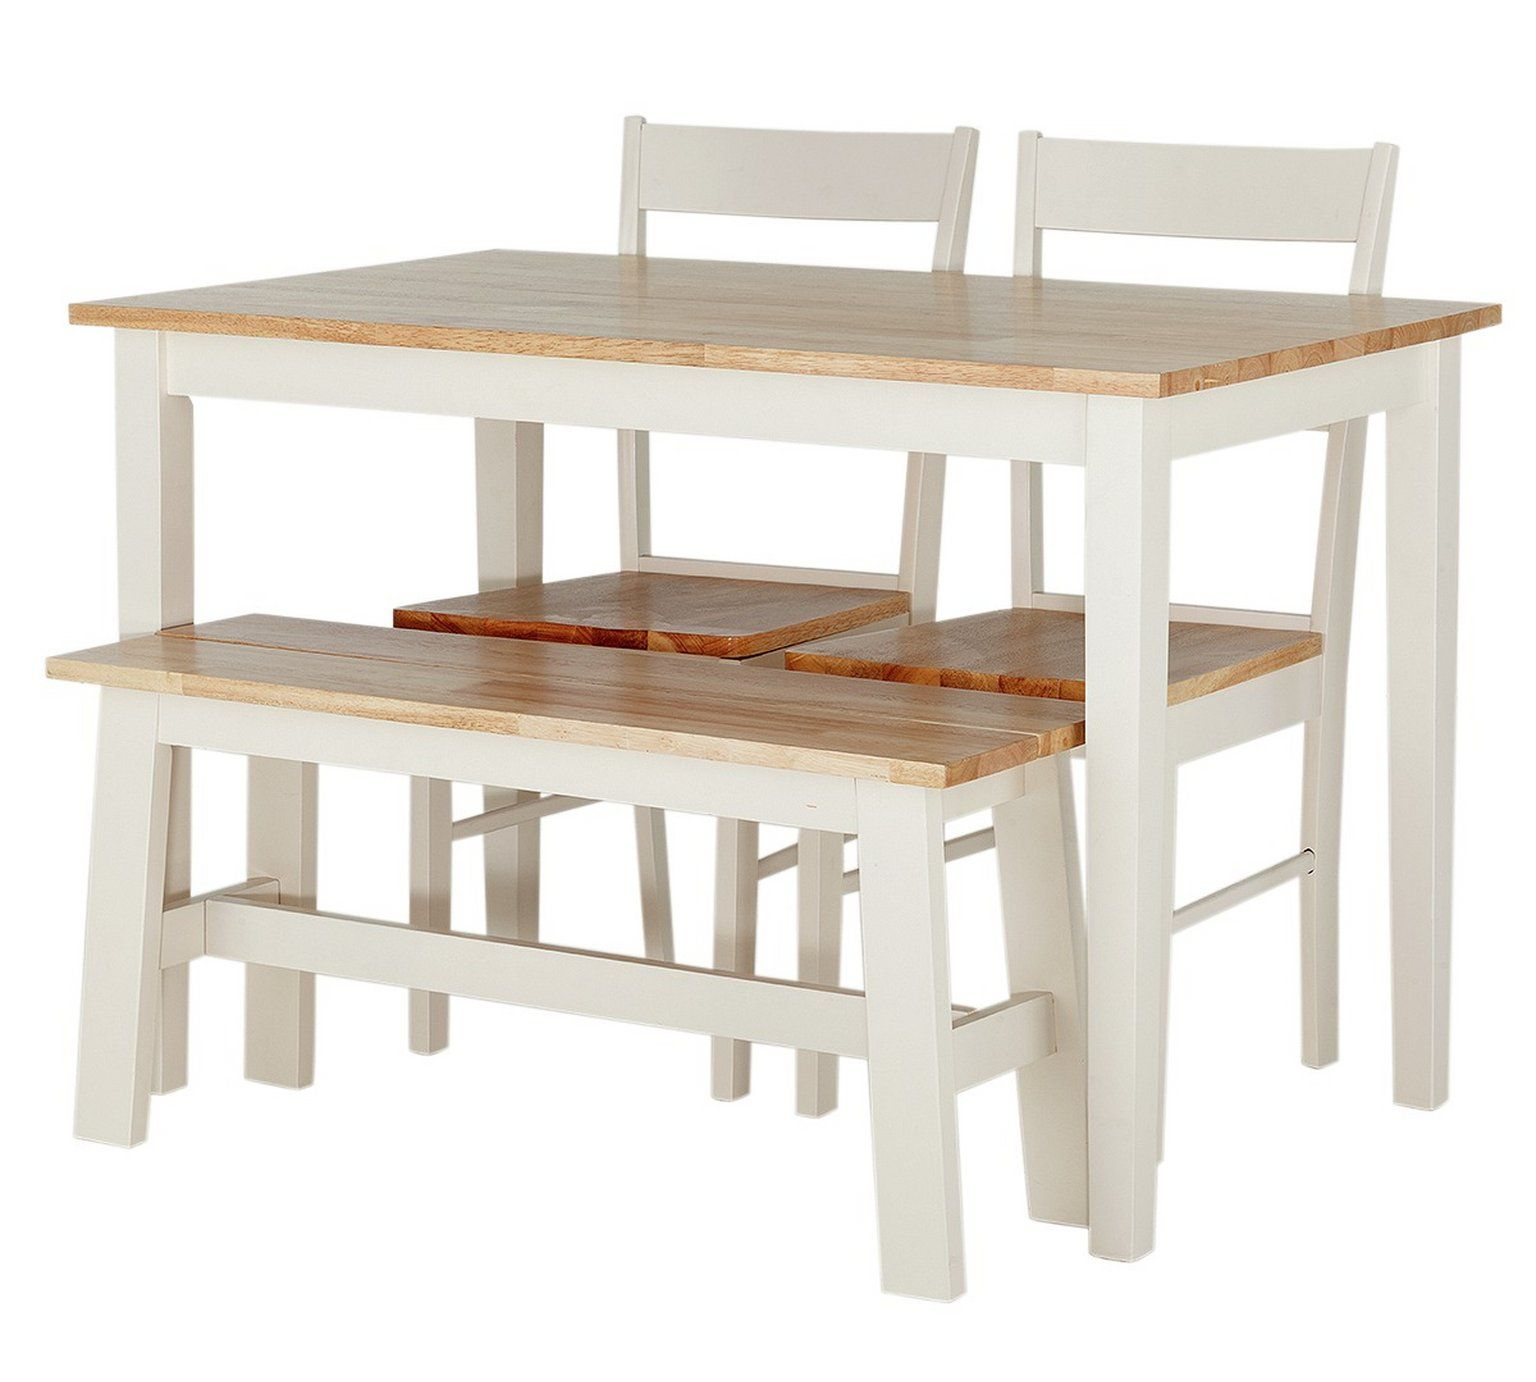 Buy Argos Home Chicago Solid Wood Table, 2 Chairs & Bench | Space Saving Dining Sets | Argos | Compact Table And Chairs, Space Saving Dining Table, Solid Wood Table